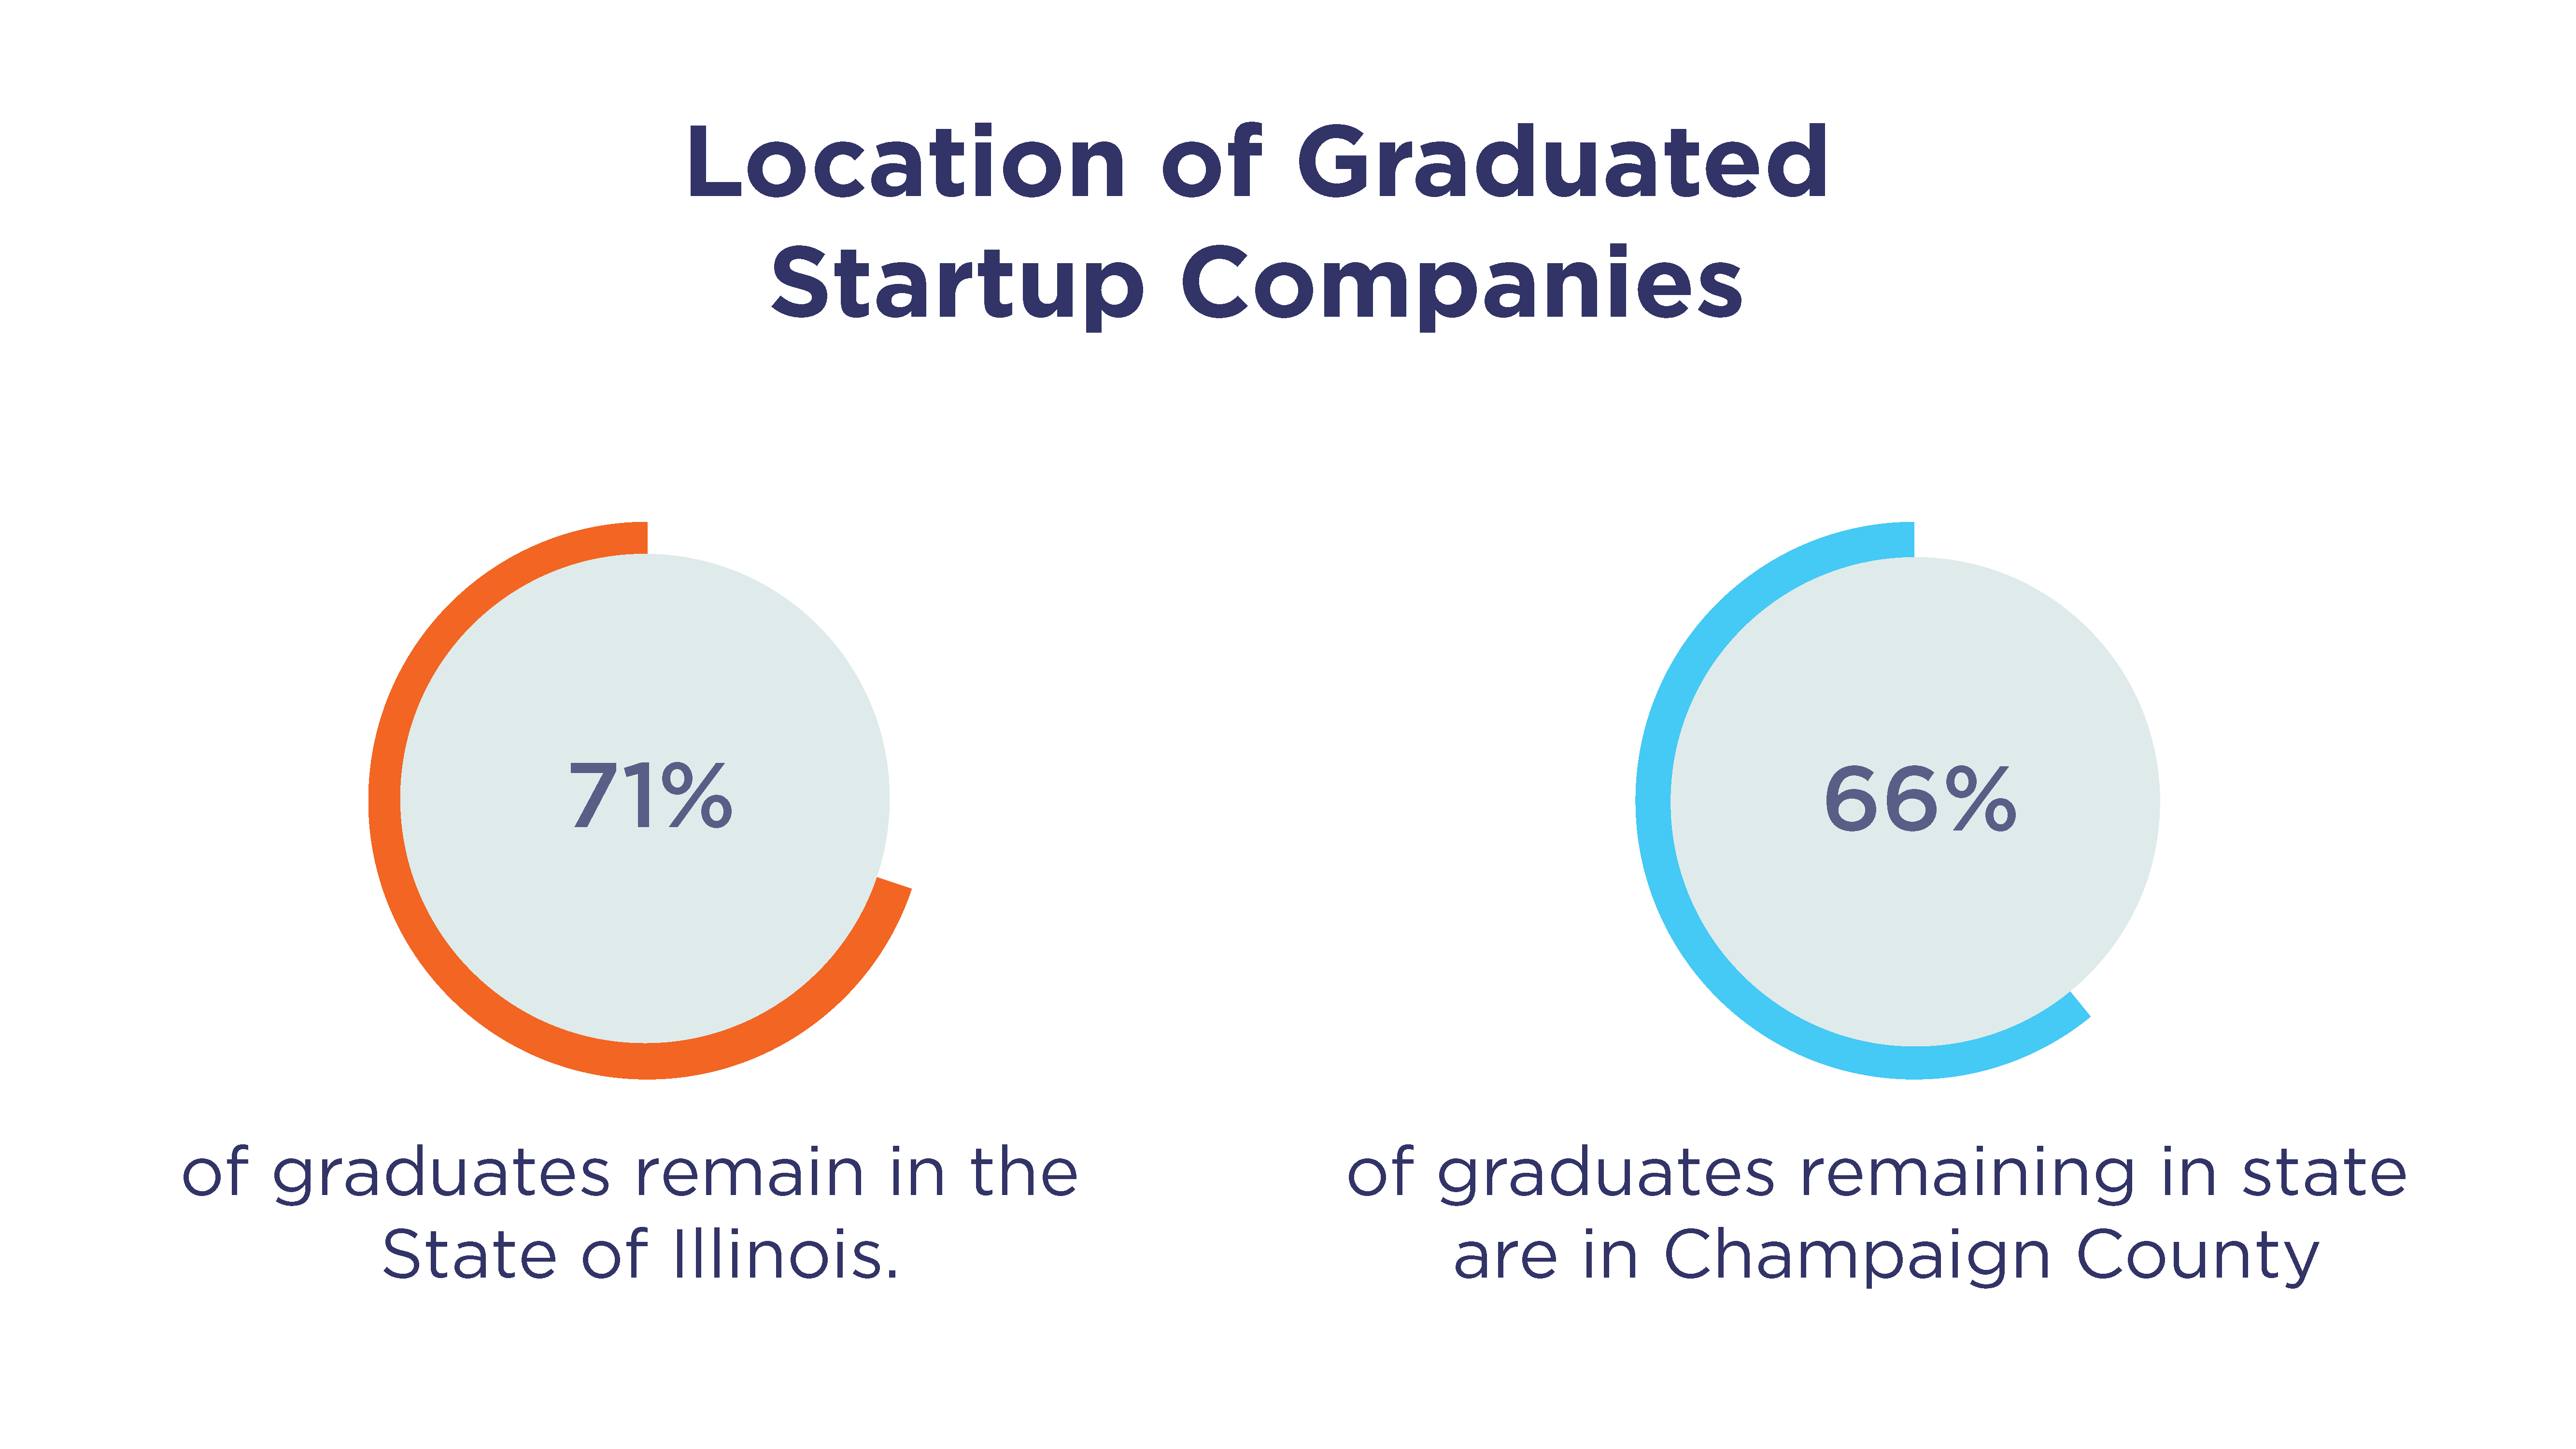 Location of Graduated Startup Companies